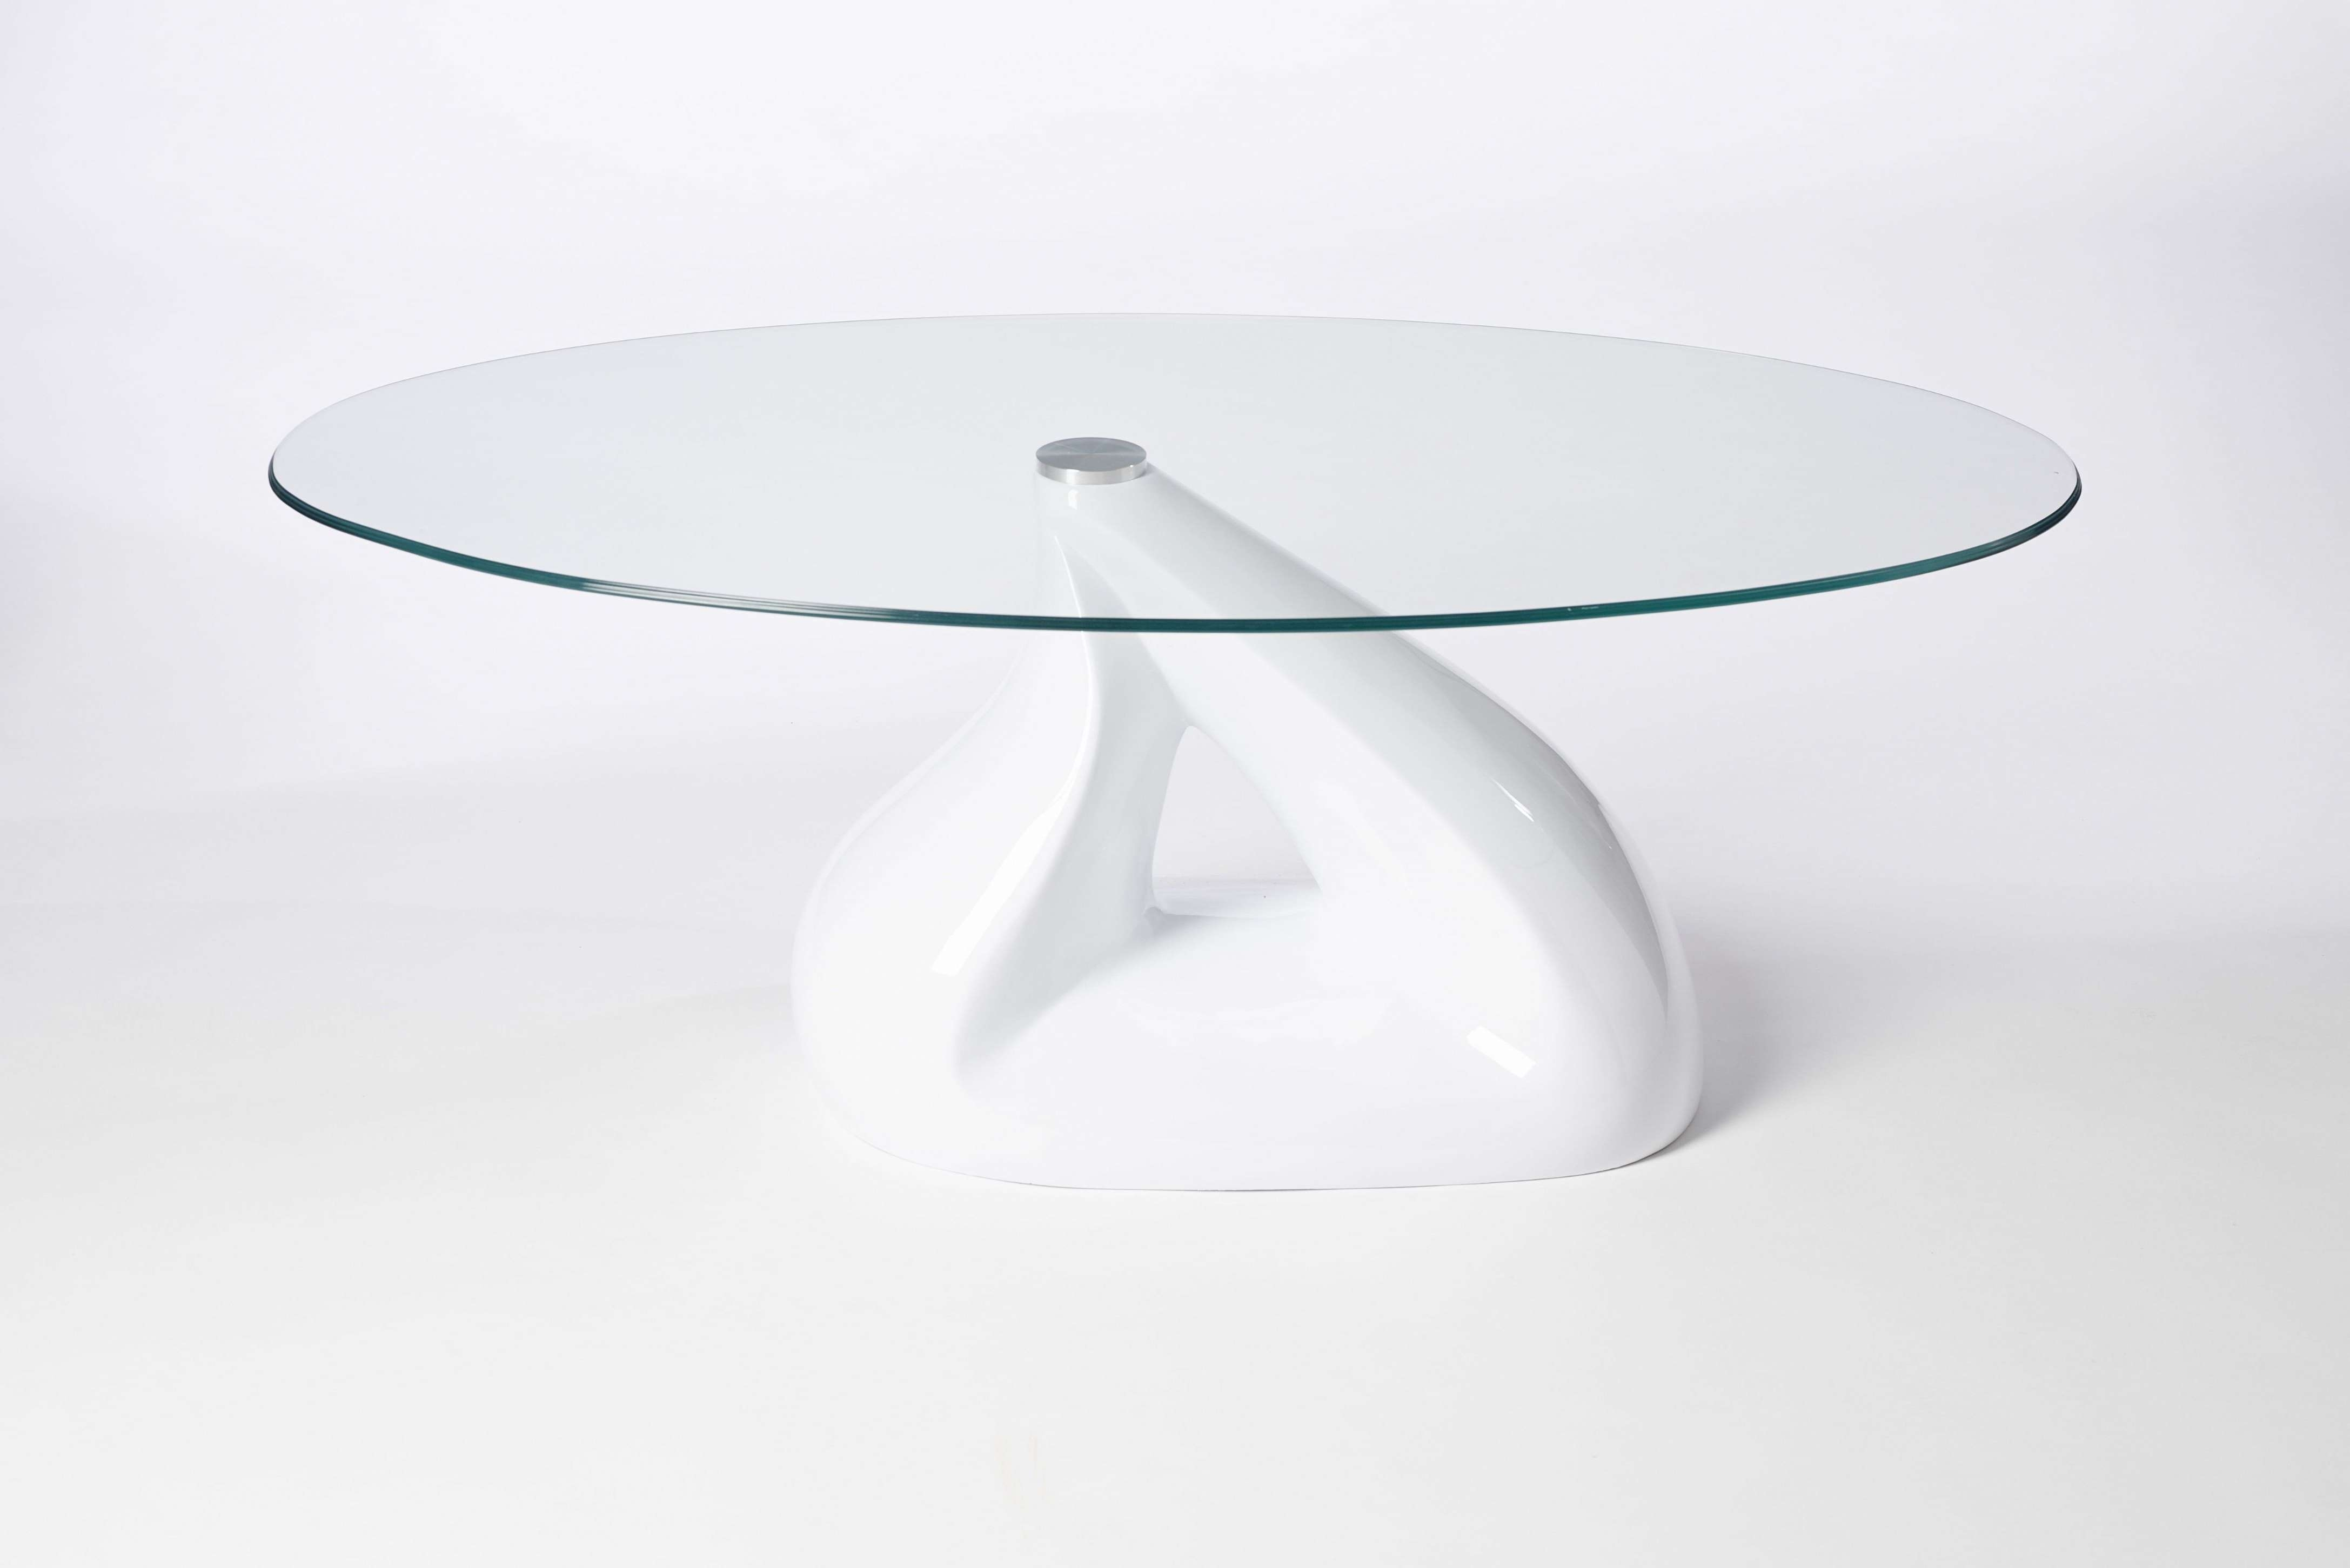 Decorations : Living Room Lovely Acrylic Clear Glass Oval Coffee For Best And Newest White Oval Coffee Tables (View 10 of 20)